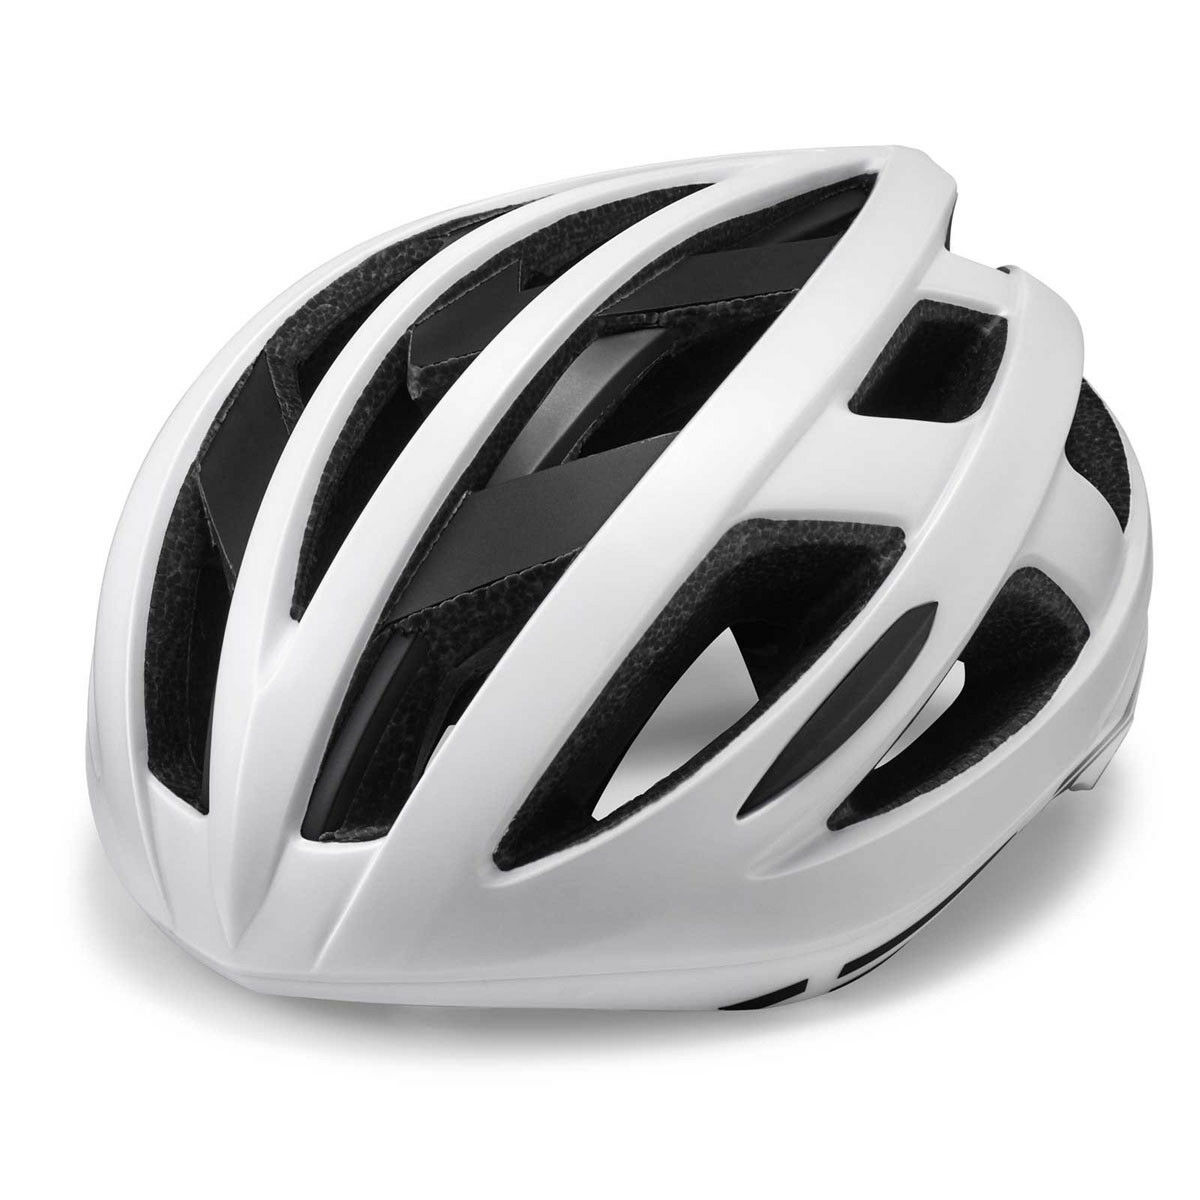 Cannondale CAAD MIPS Equipped Road Bicycle Helmet